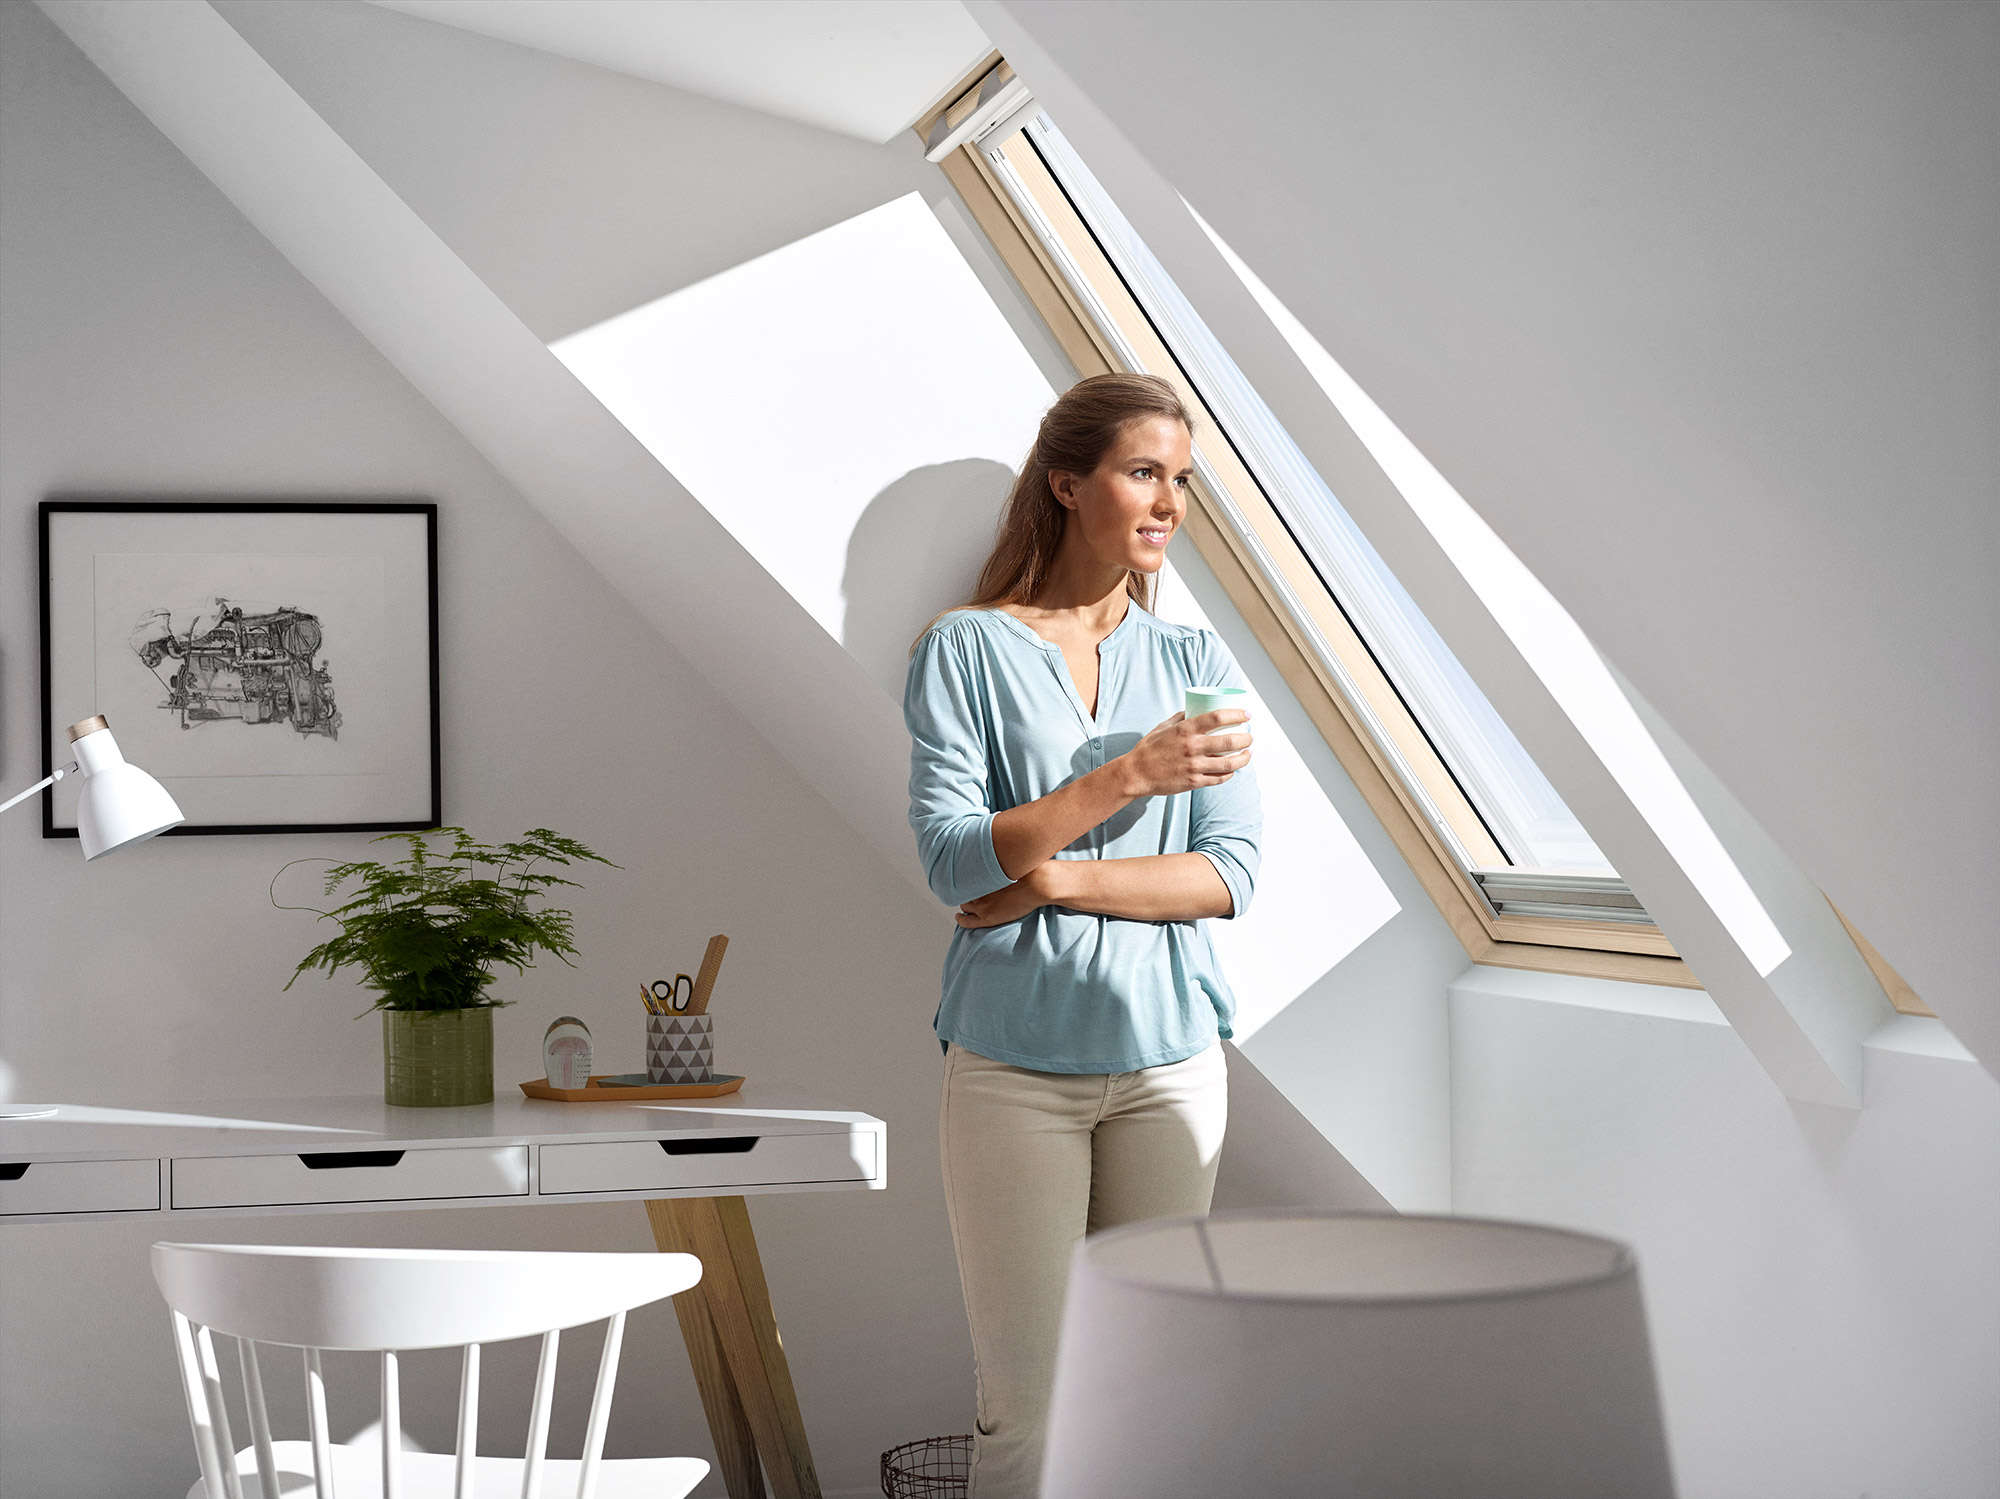 Where can you spend VELUX rewards?